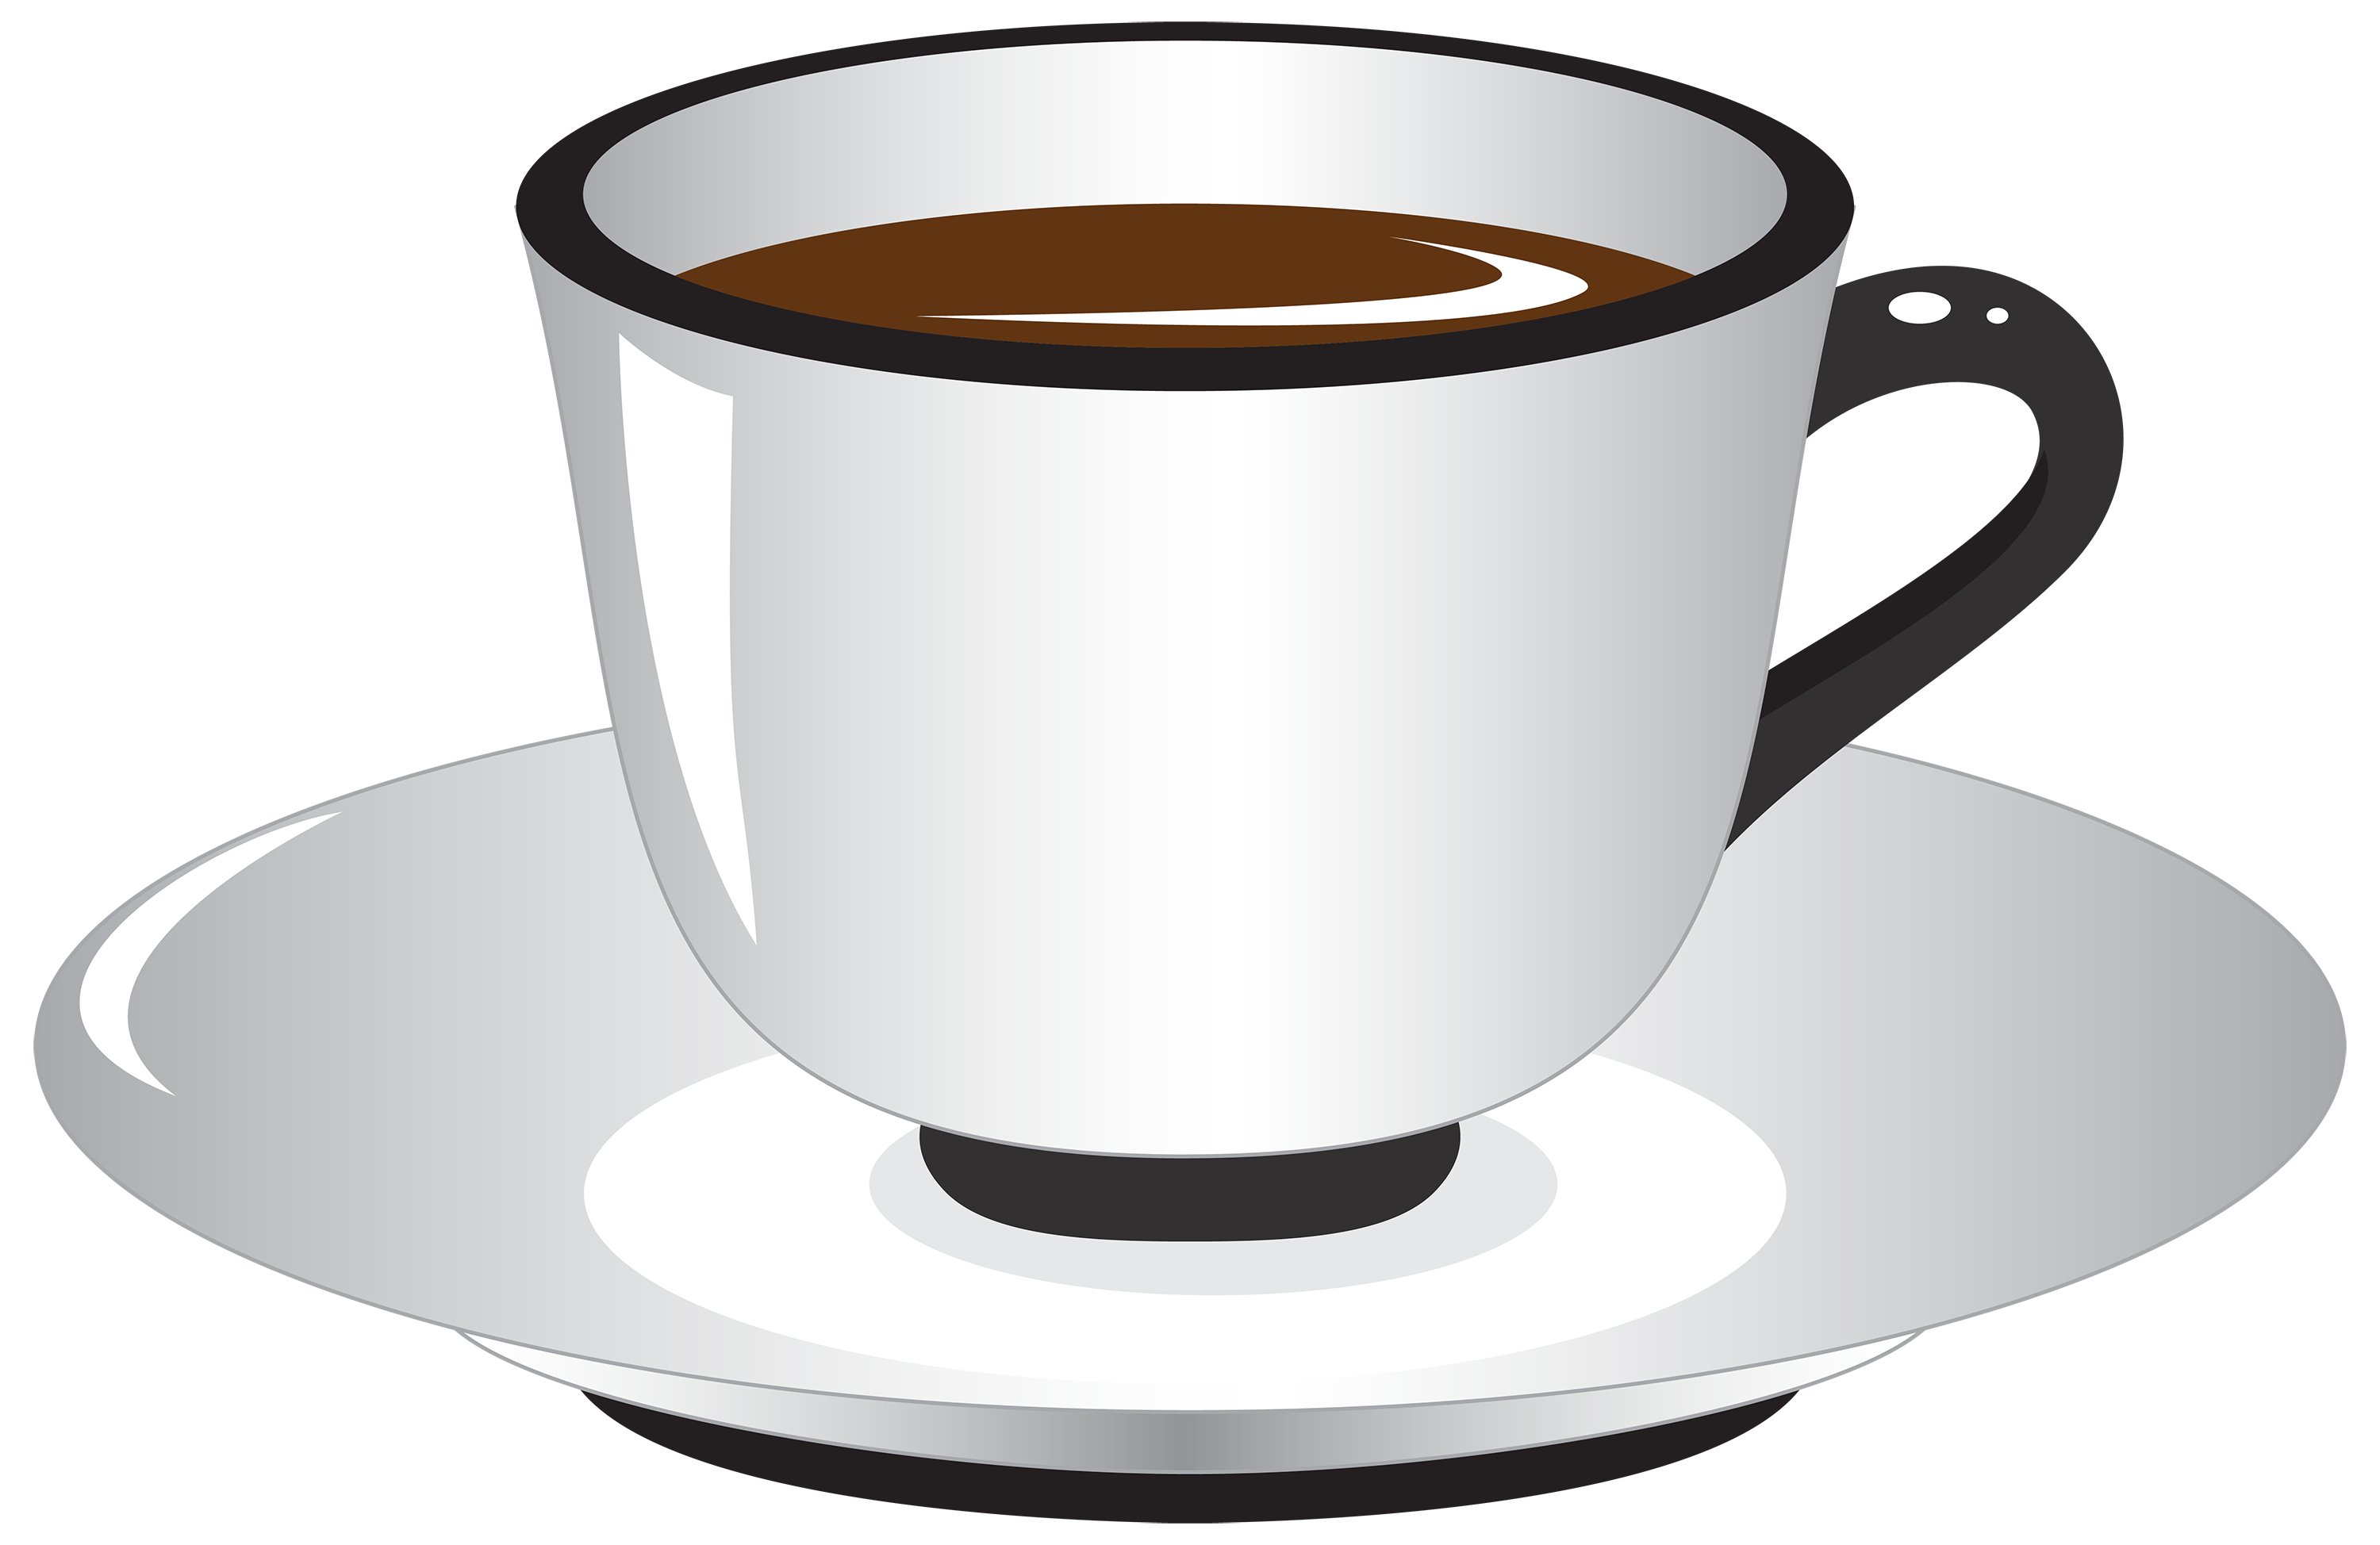 Coffee cup clip art free perfect cup of coffee clipart 3.